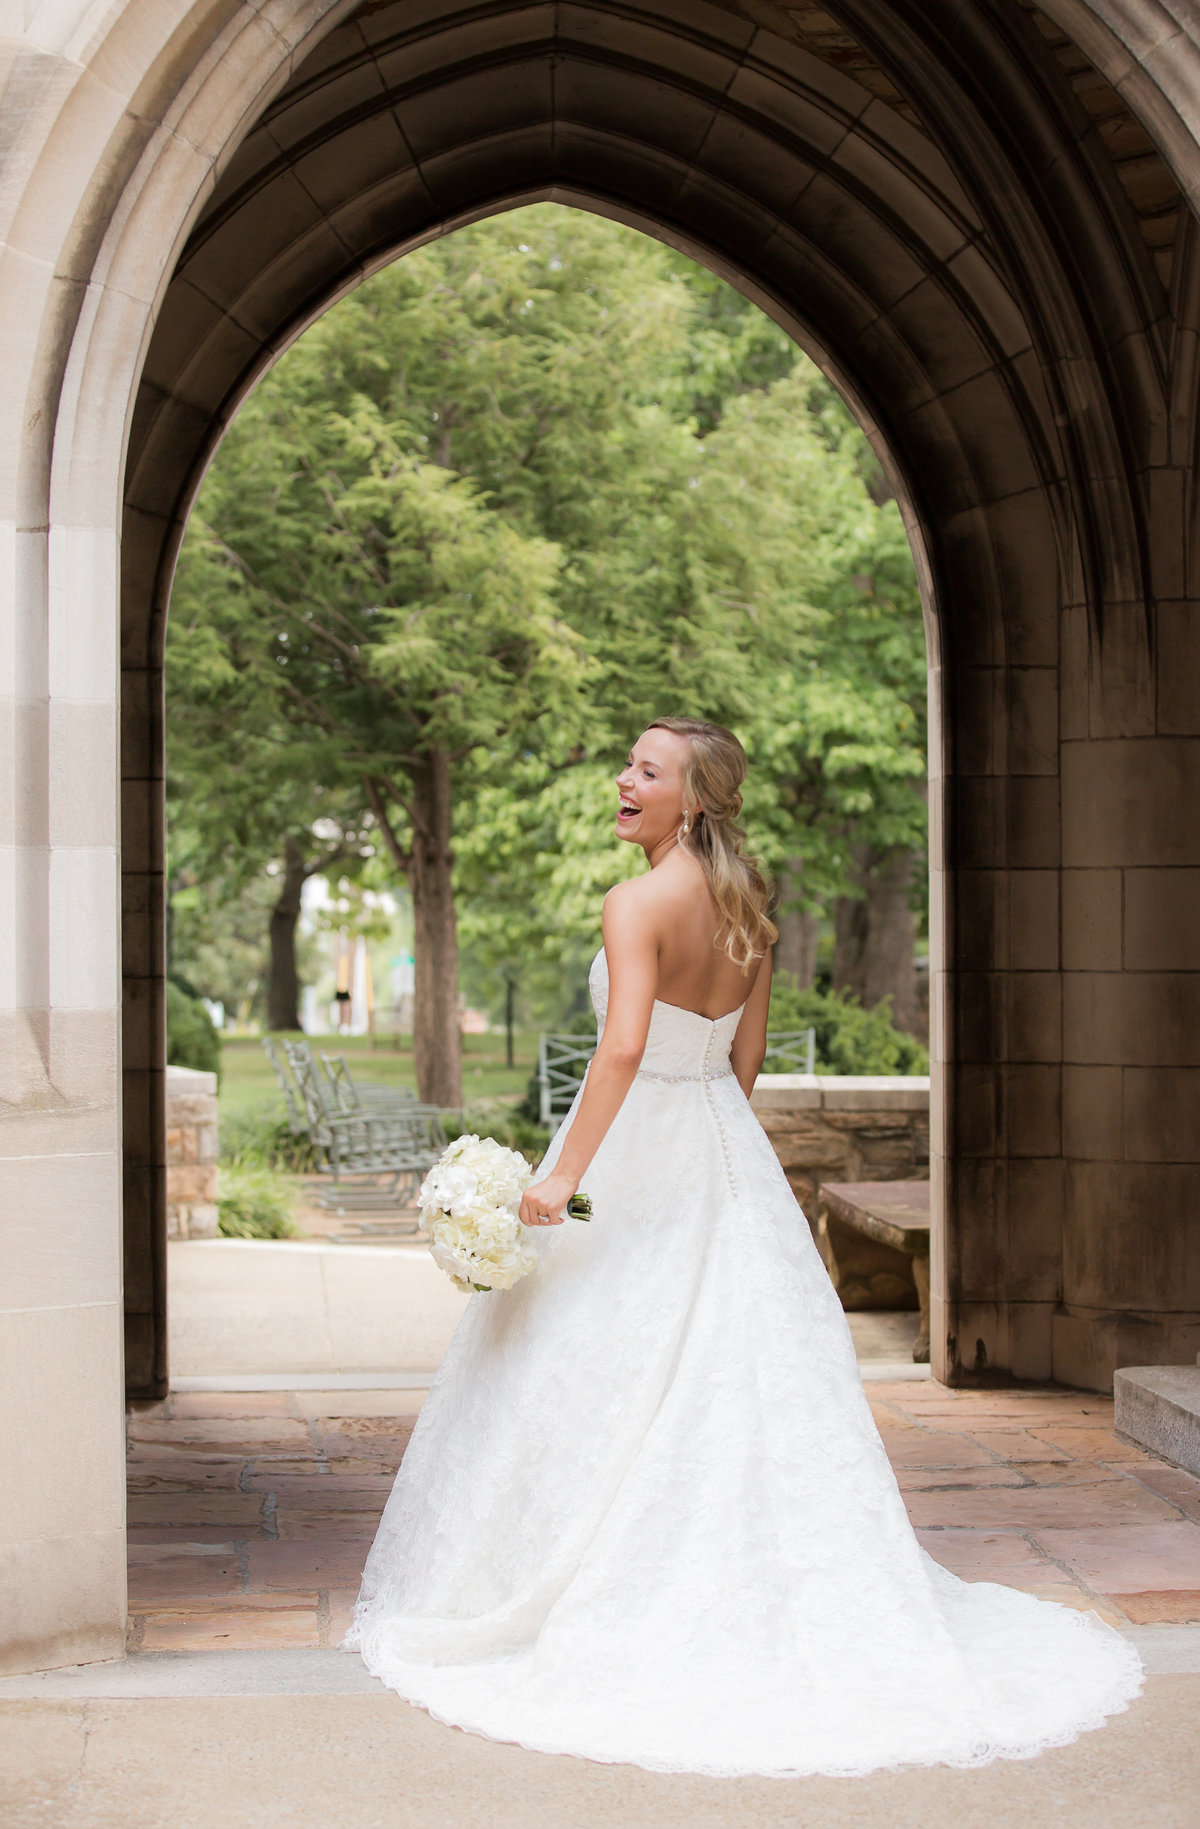 Chapel Wedding - Scaritt Bennett - Nashville Bride - Nashville Brides - Nashville Wedding - Nashvilel Weddings - Southern Bride - Traditional Bride011